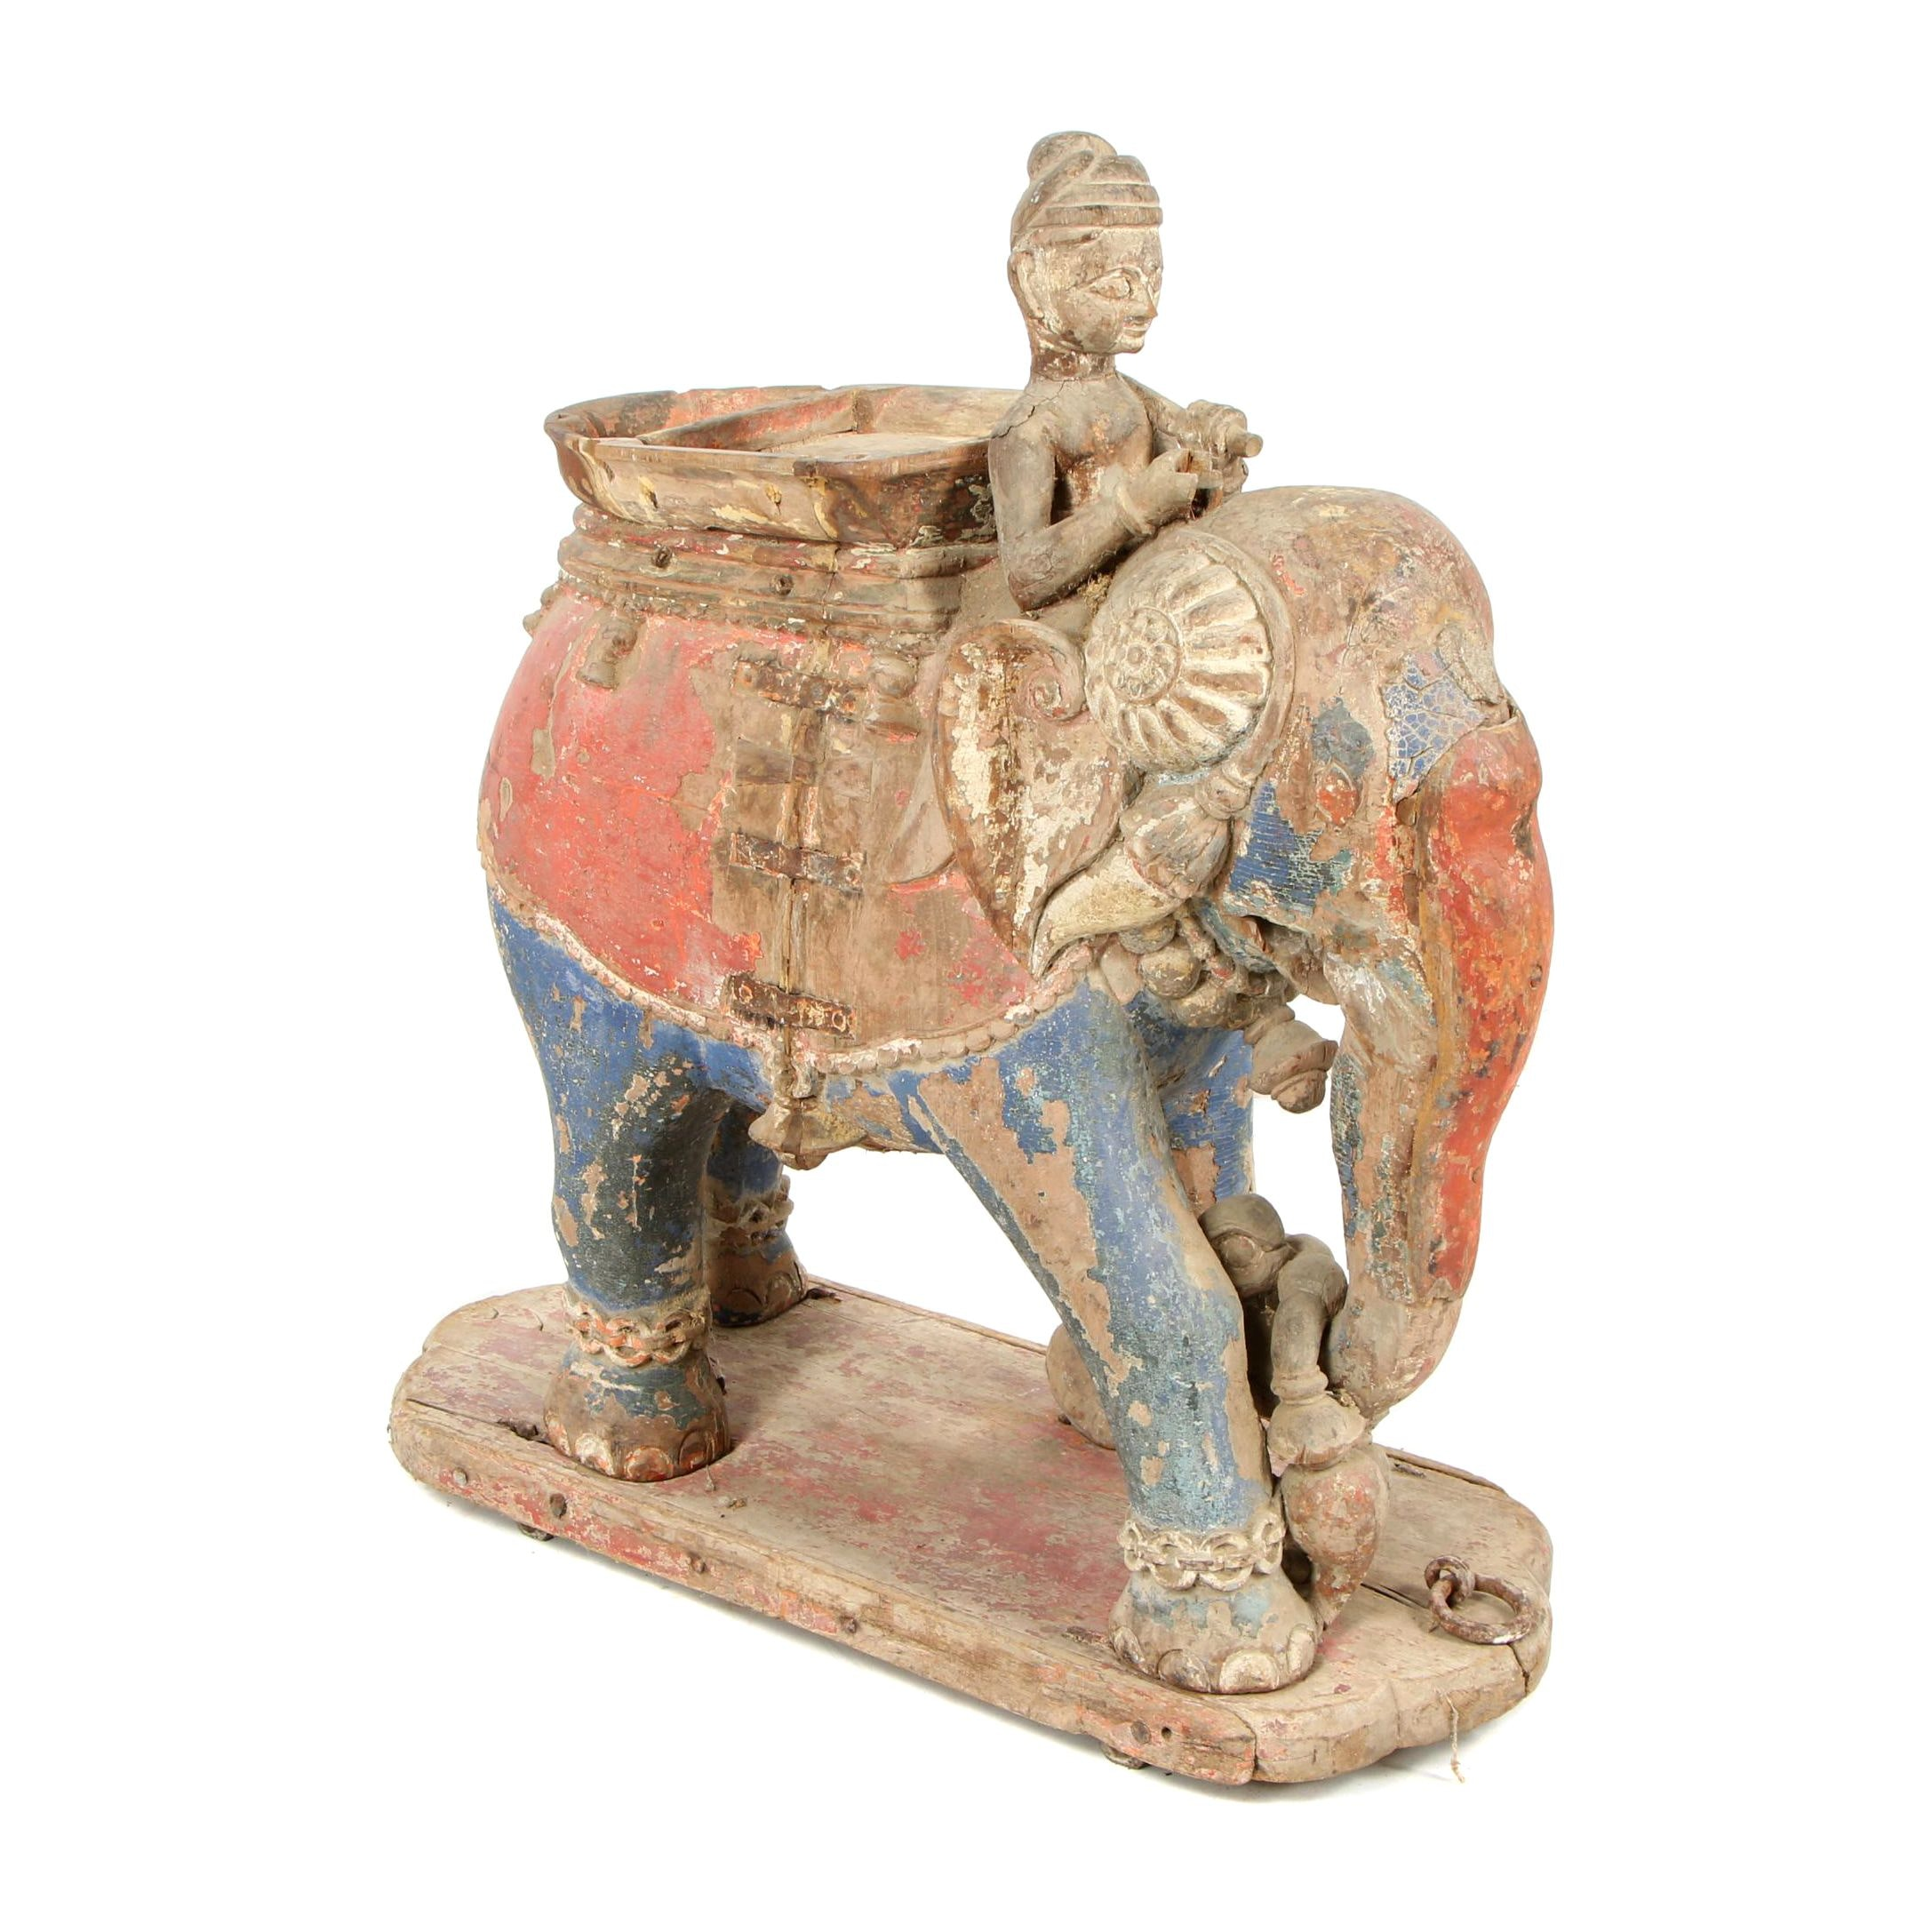 Southeast Asian Style Polychrome Elephant Sculpture